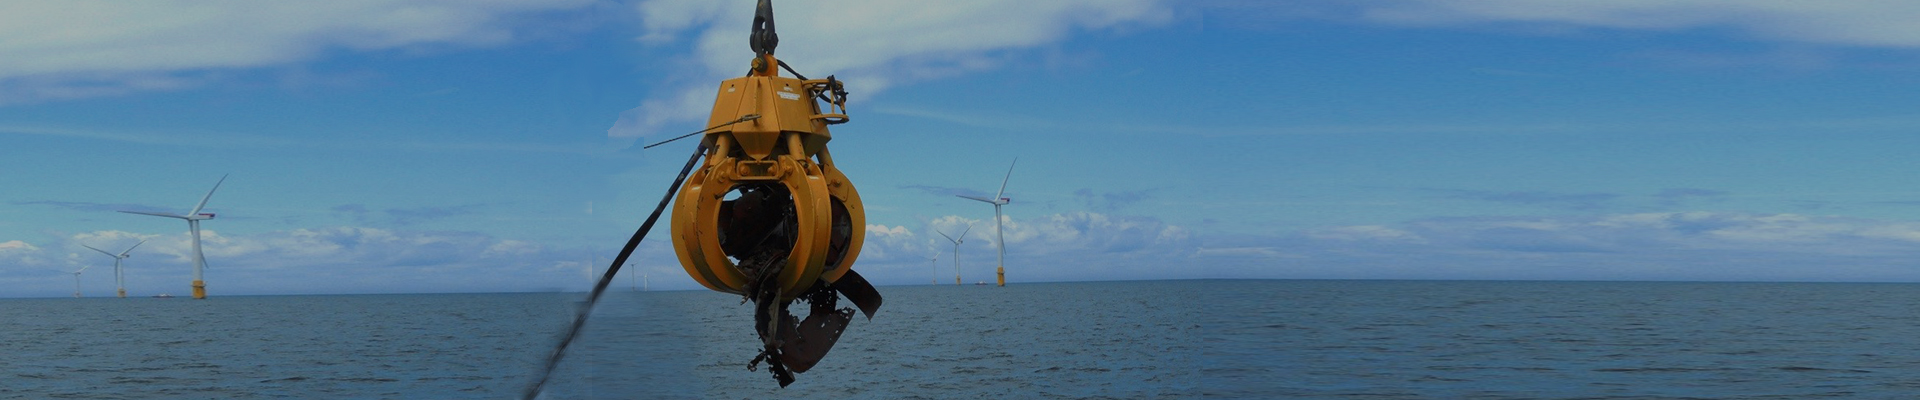 Offshore-renewables-banner-1920-x-400.jpg